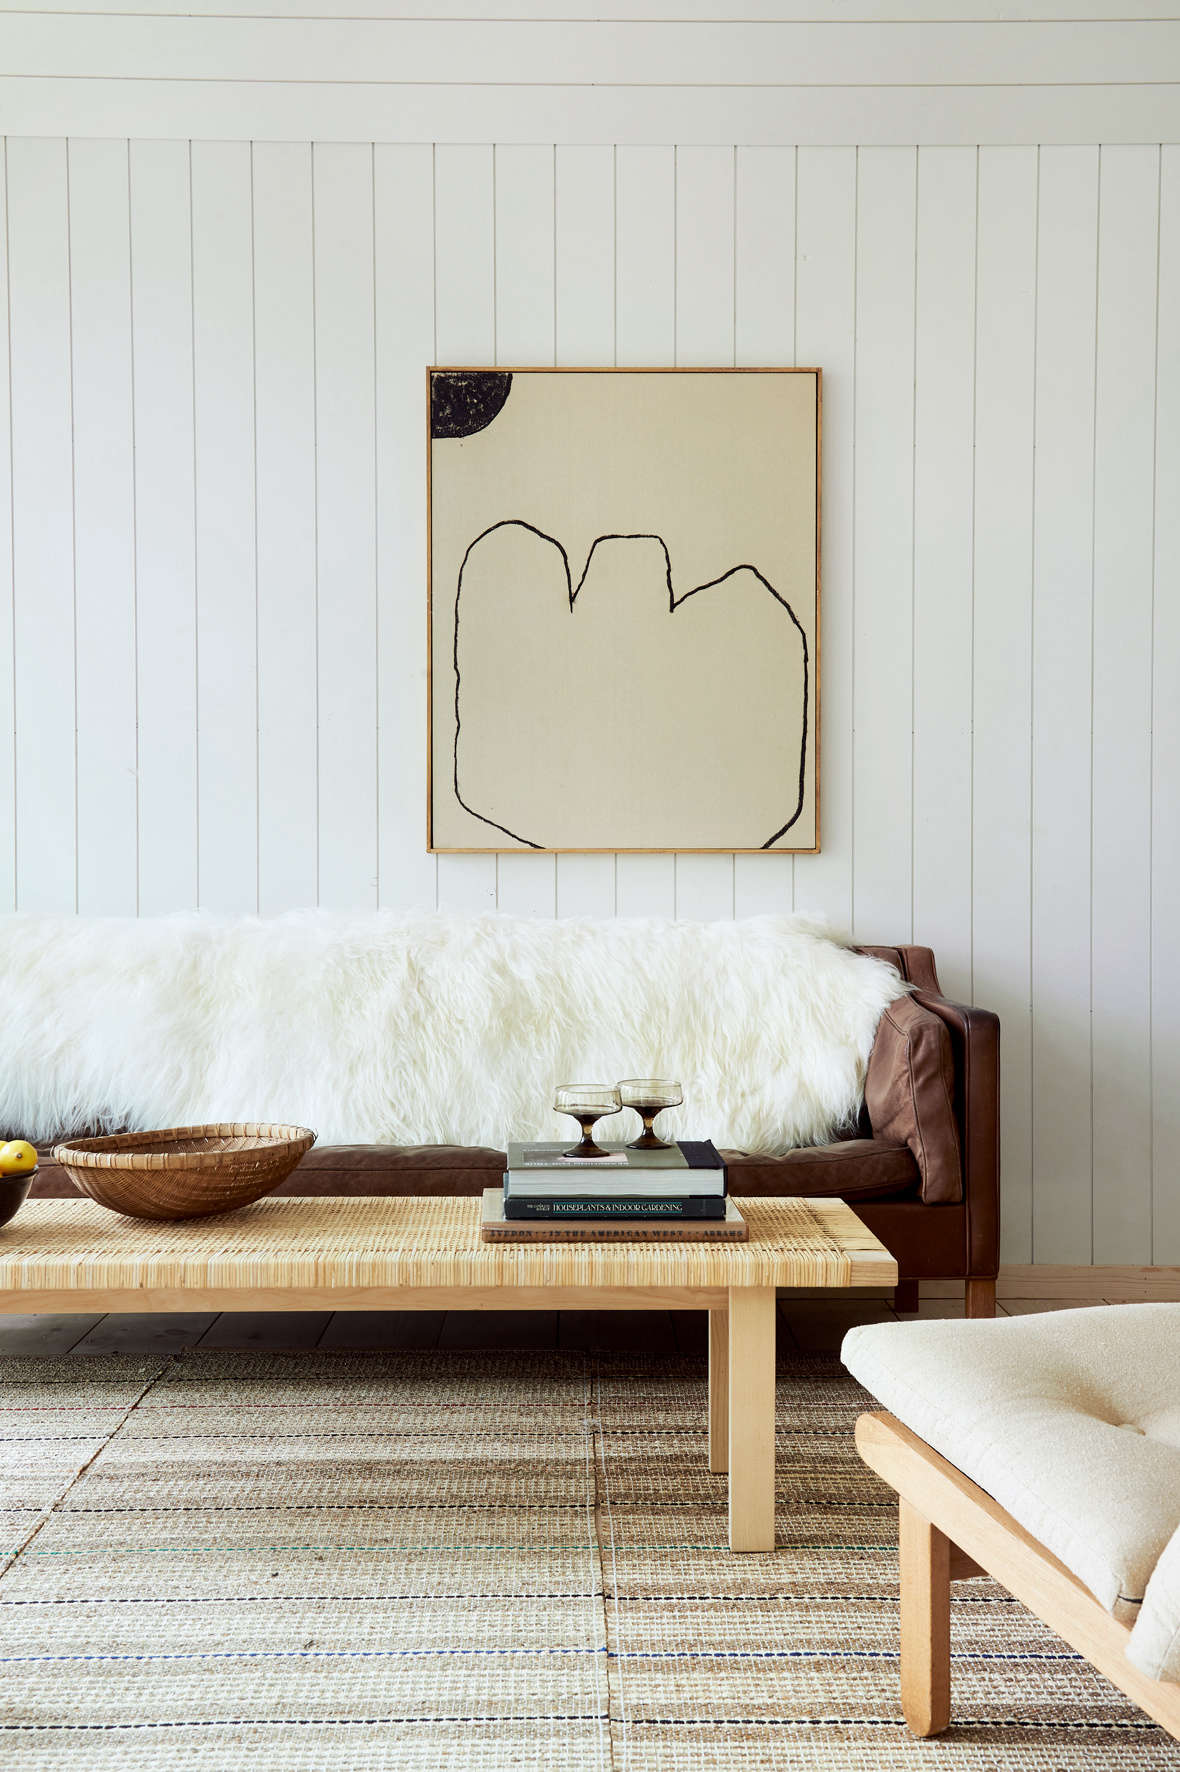 A painting by Bertrand Fournier hangs above a vintage Borge Mogensen